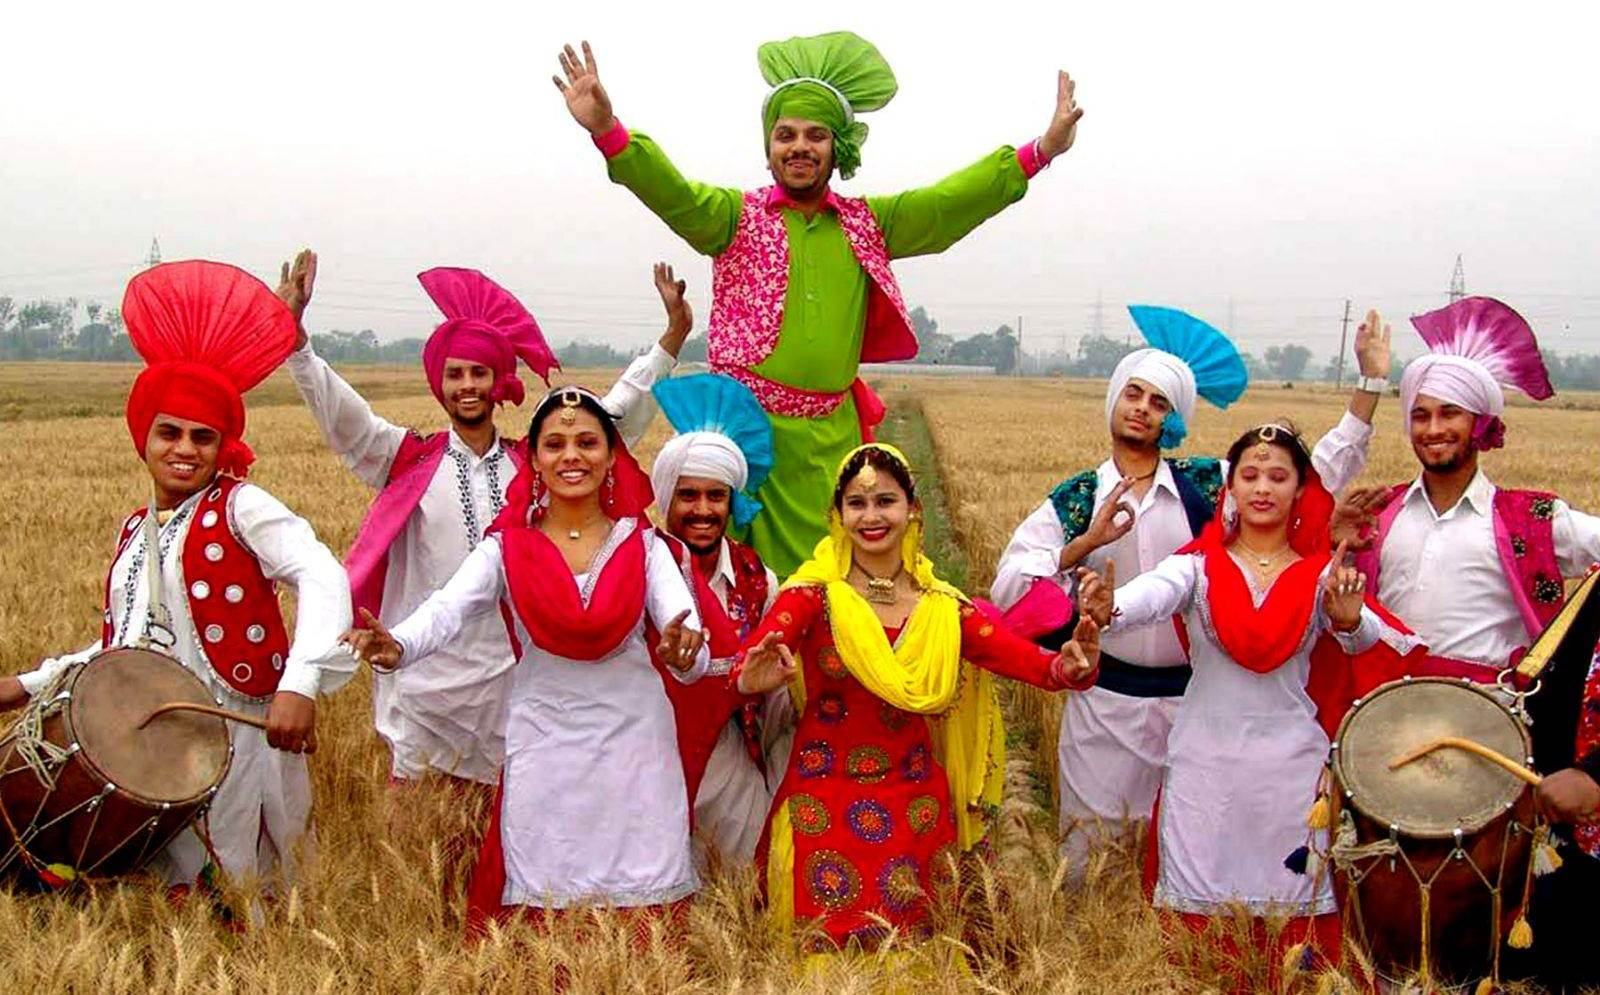 Who Are The Punjabi People?